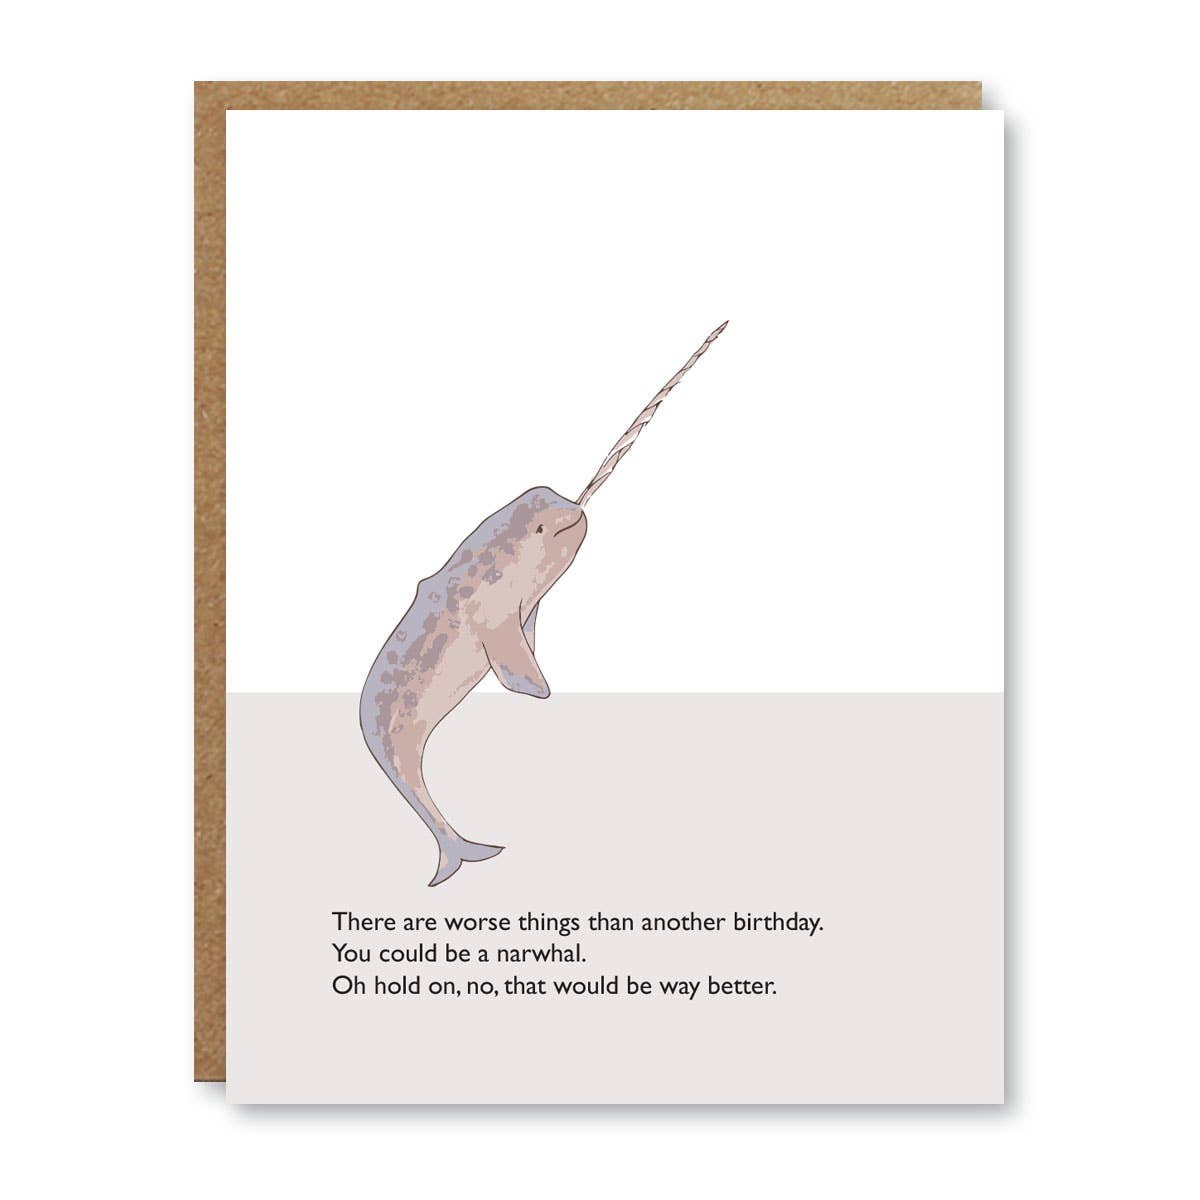 Boo To You - Greeting Card - Narwhal